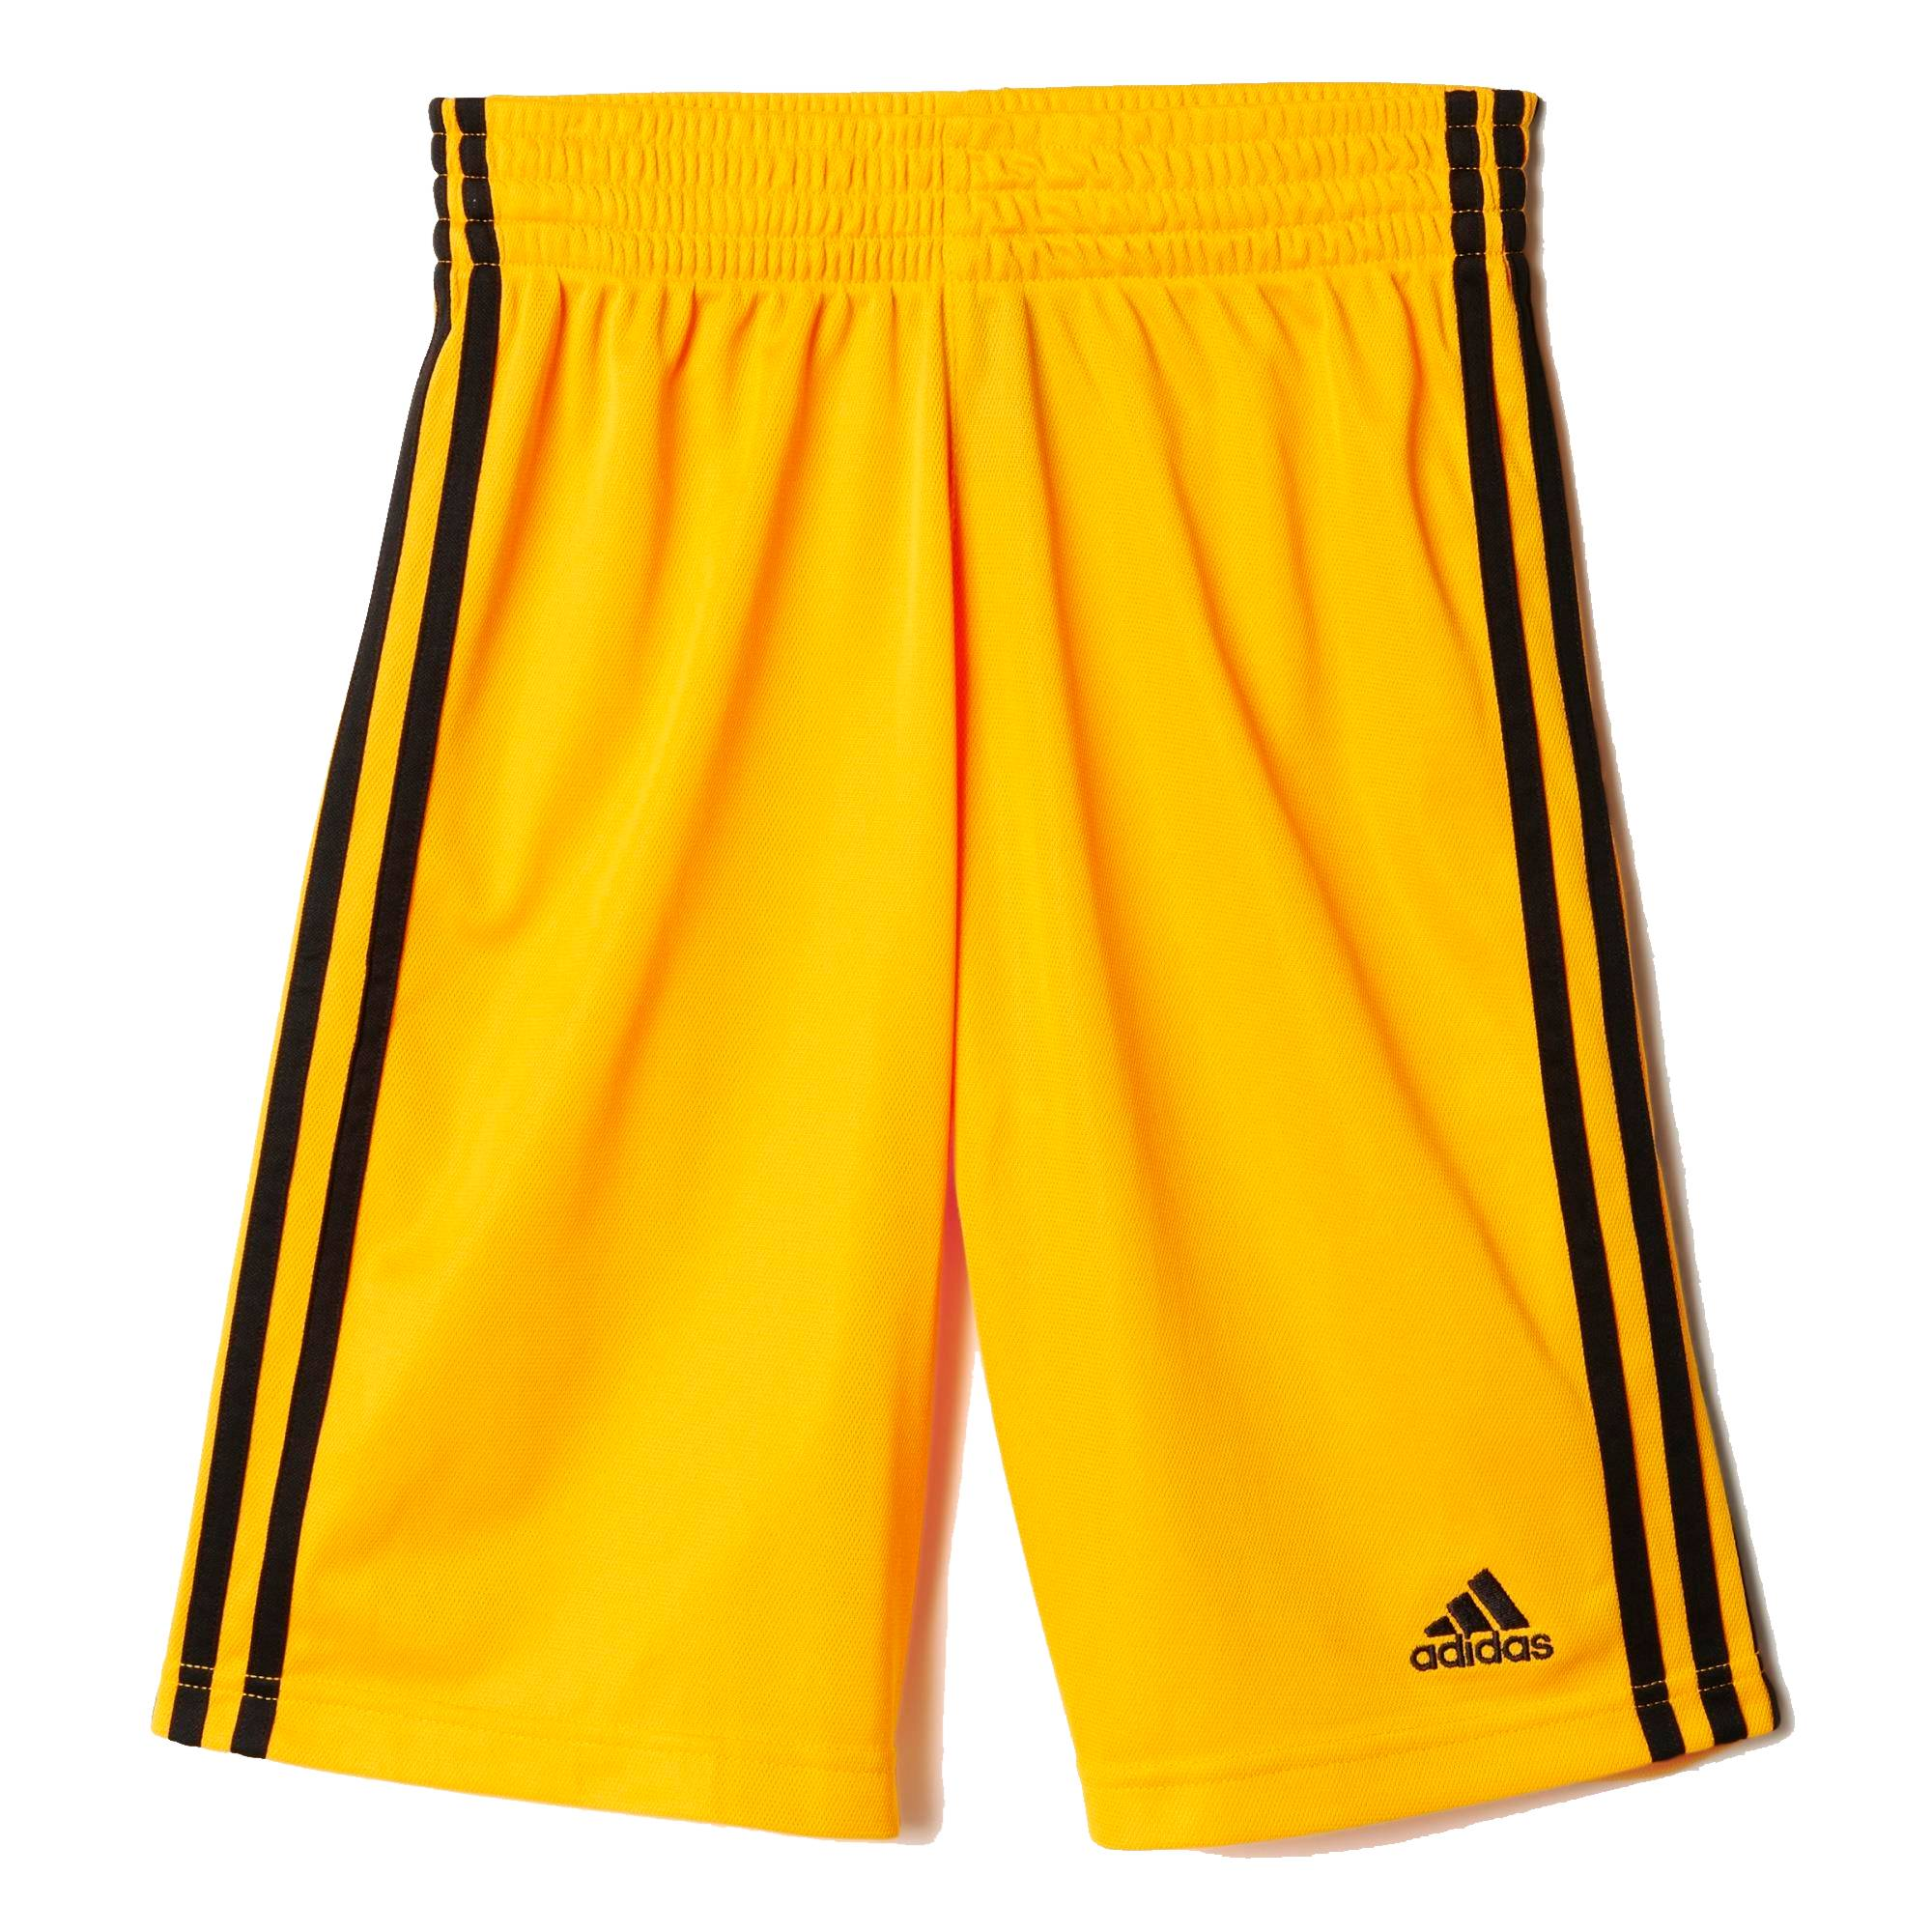 Adidas Kids Commander Shorts - AD-G91755